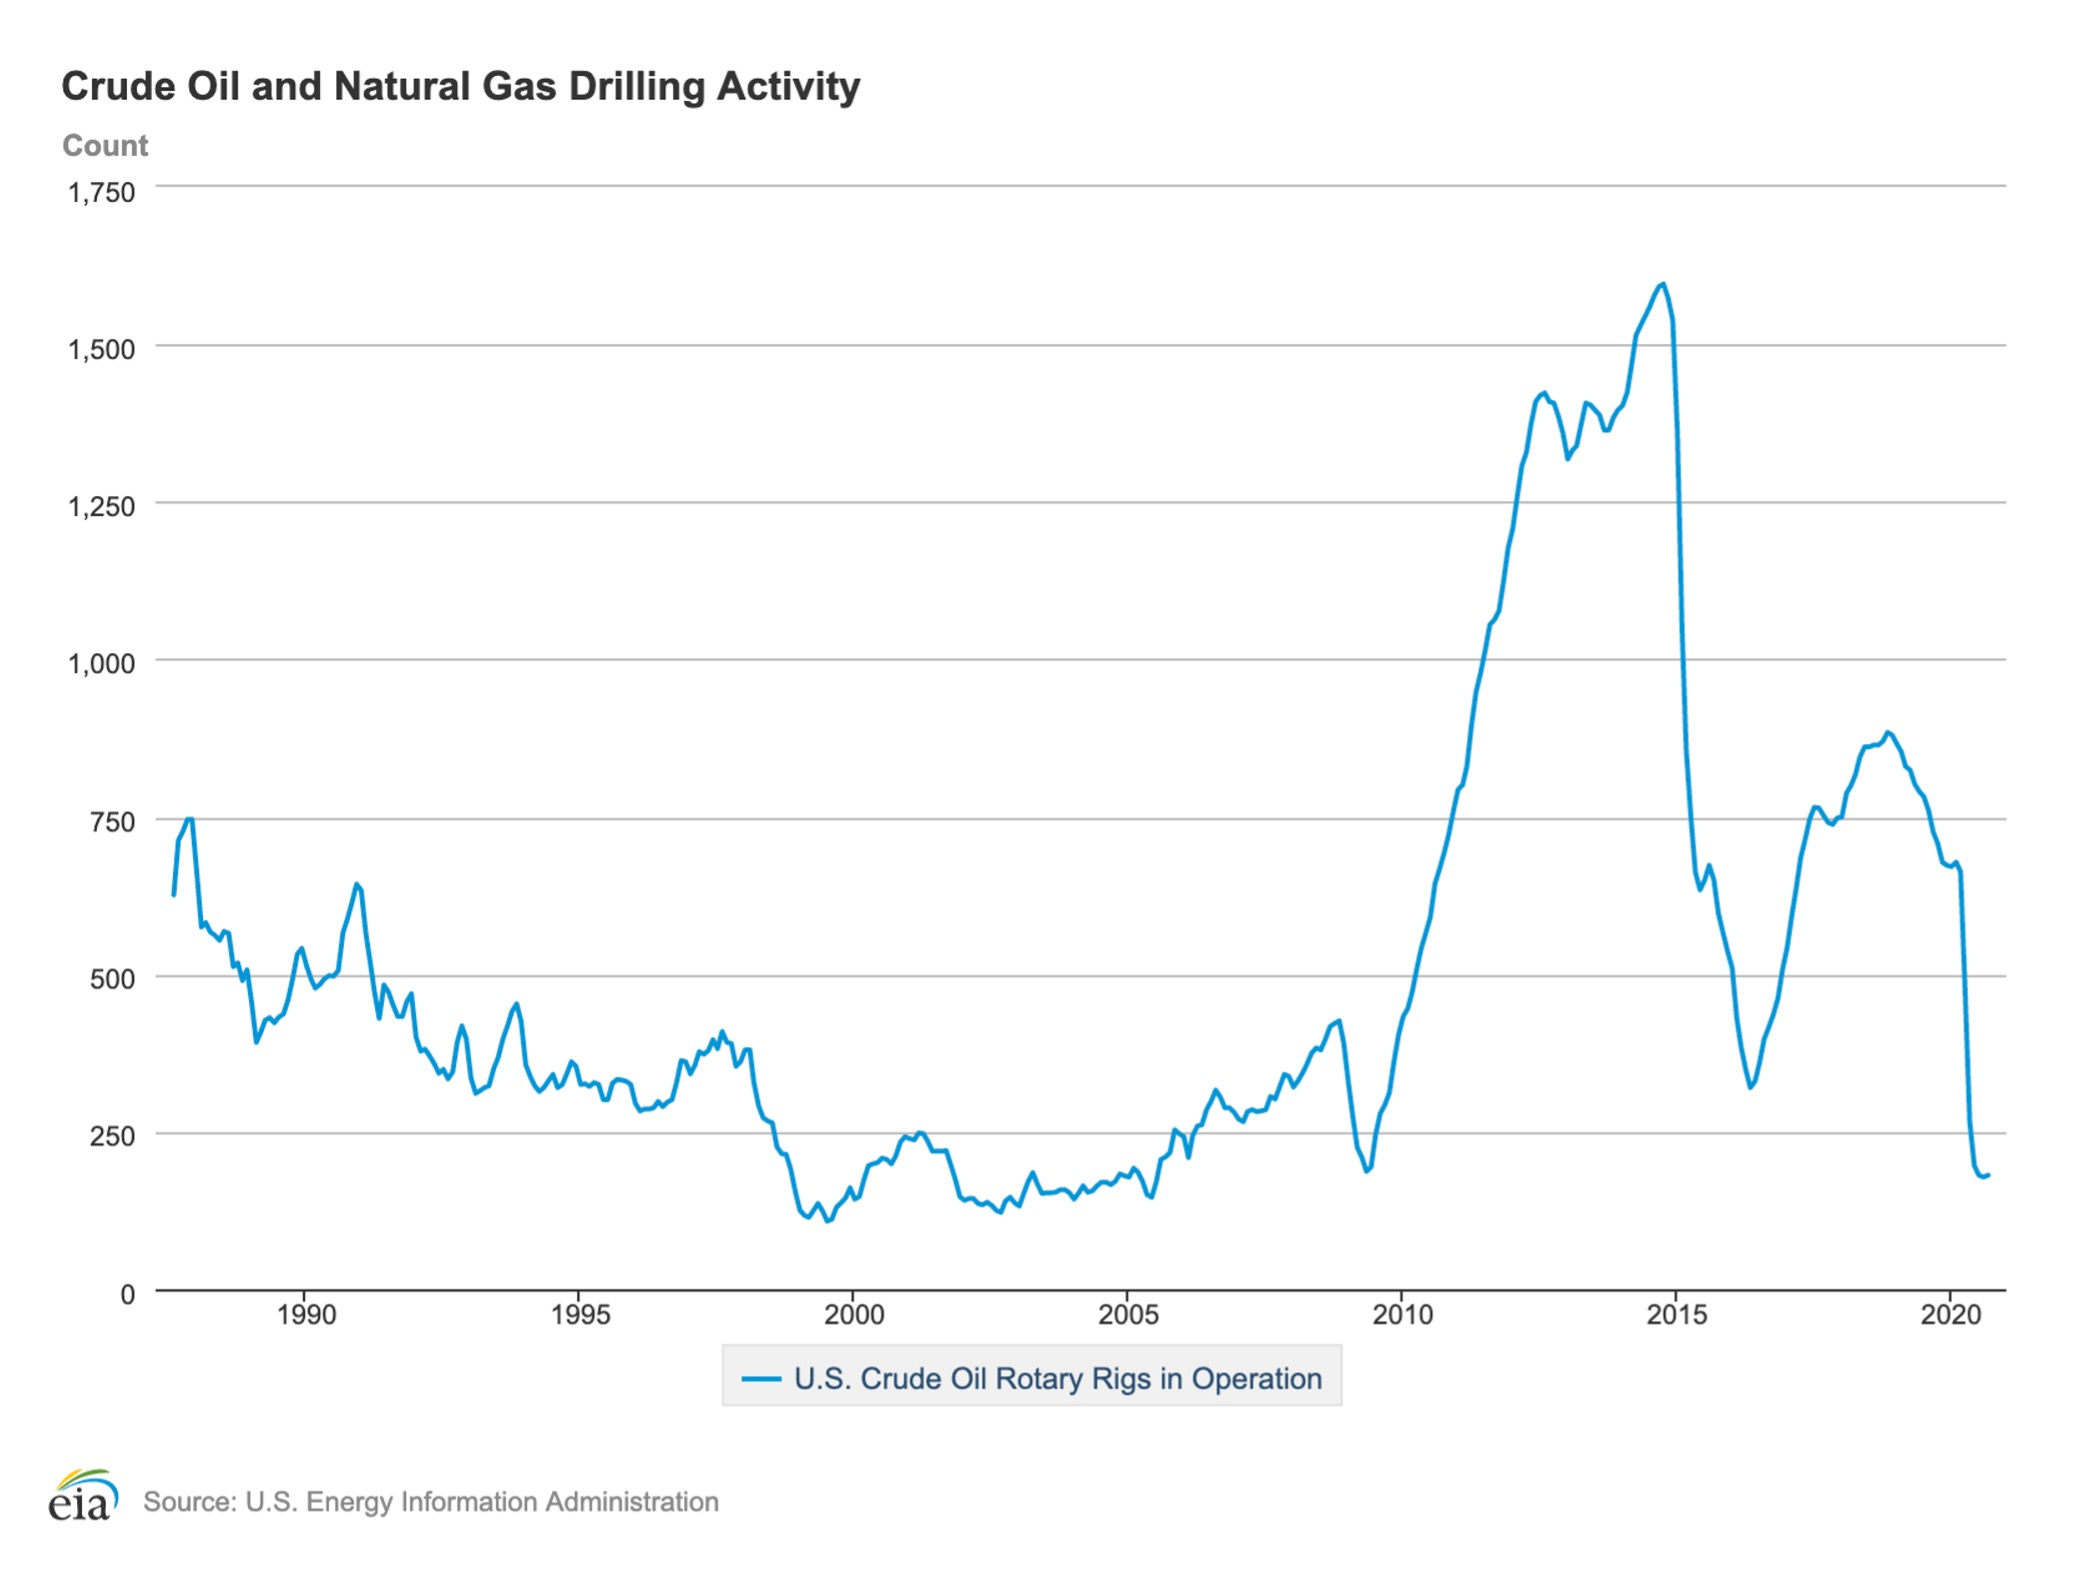 Oil Rig Count Shale Natural Gas